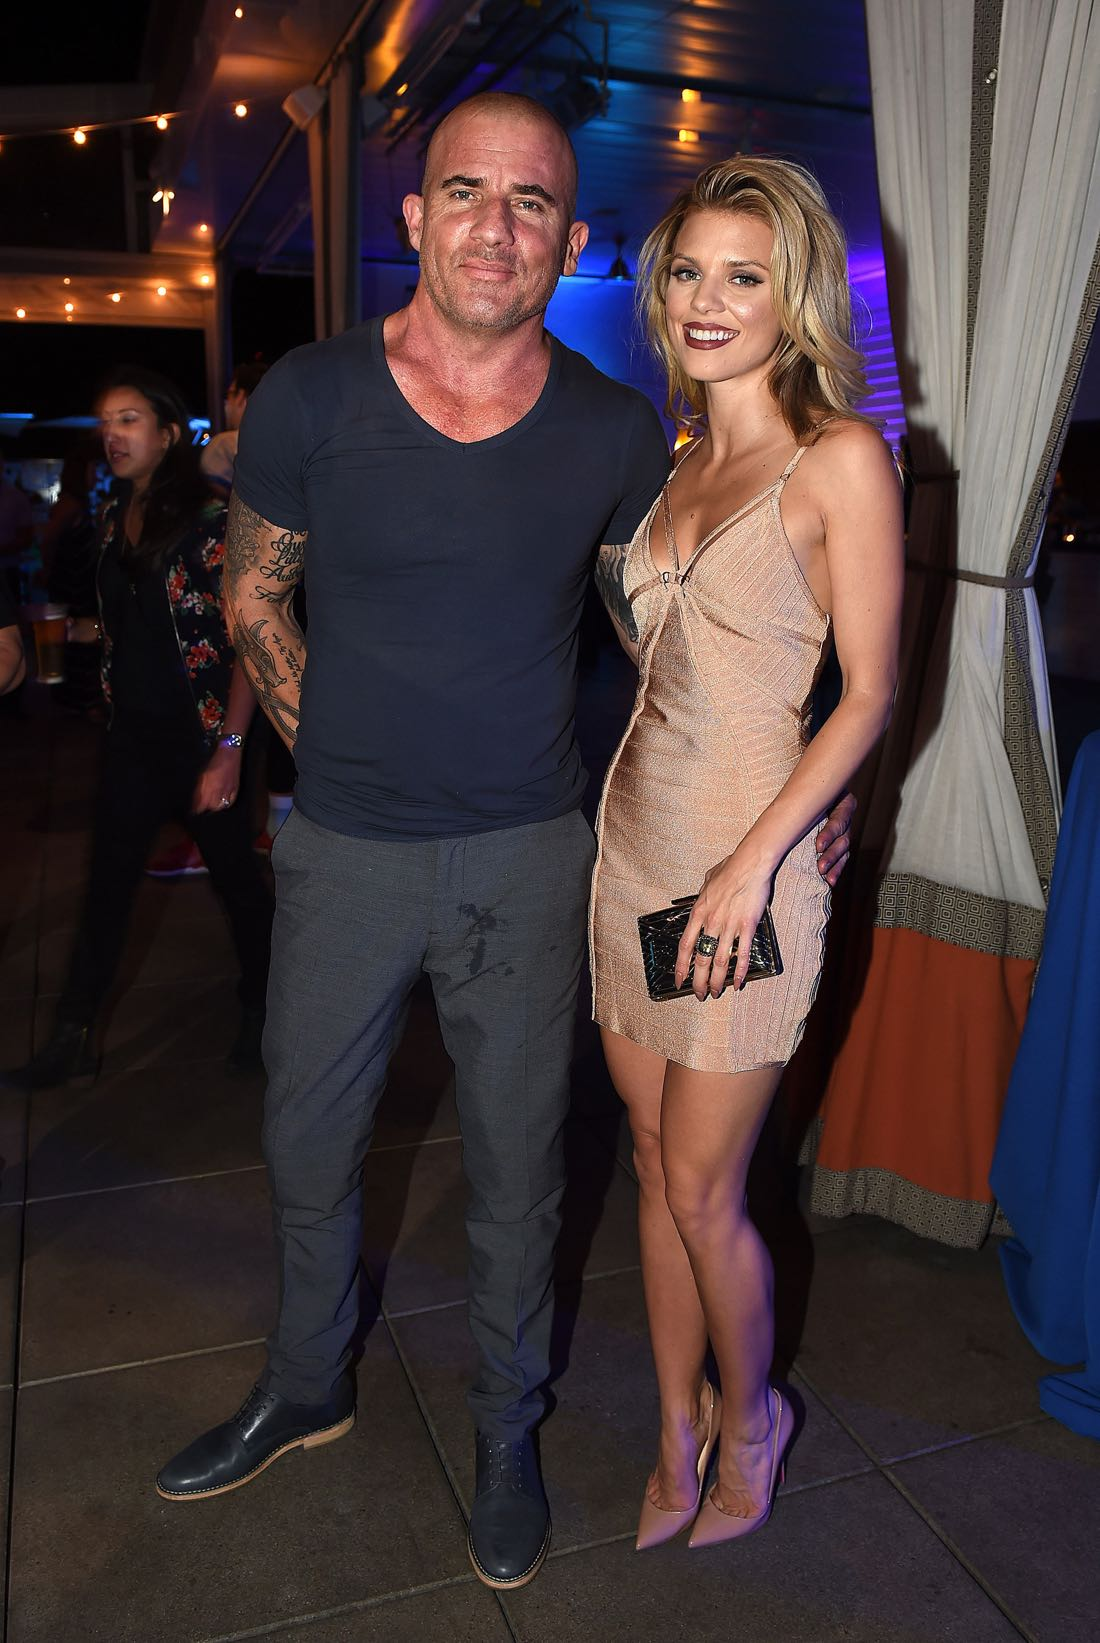 FOX FANFARE ALL-STAR COMIC CON PARTY AT SAN DIEGO COMIC-CON © 2016: AnnaLynne McCord and Dominic Purcell attend the FOX FANFARE ALL-STAR COMIC CON PARTY AT SAN DIEGO COMIC-CON © 2016 on Friday, July 22 at the Andaz Hotel in San Diego, CA. CR: Frank Micelotta/FOX © 2016 FOX BROADCASTING